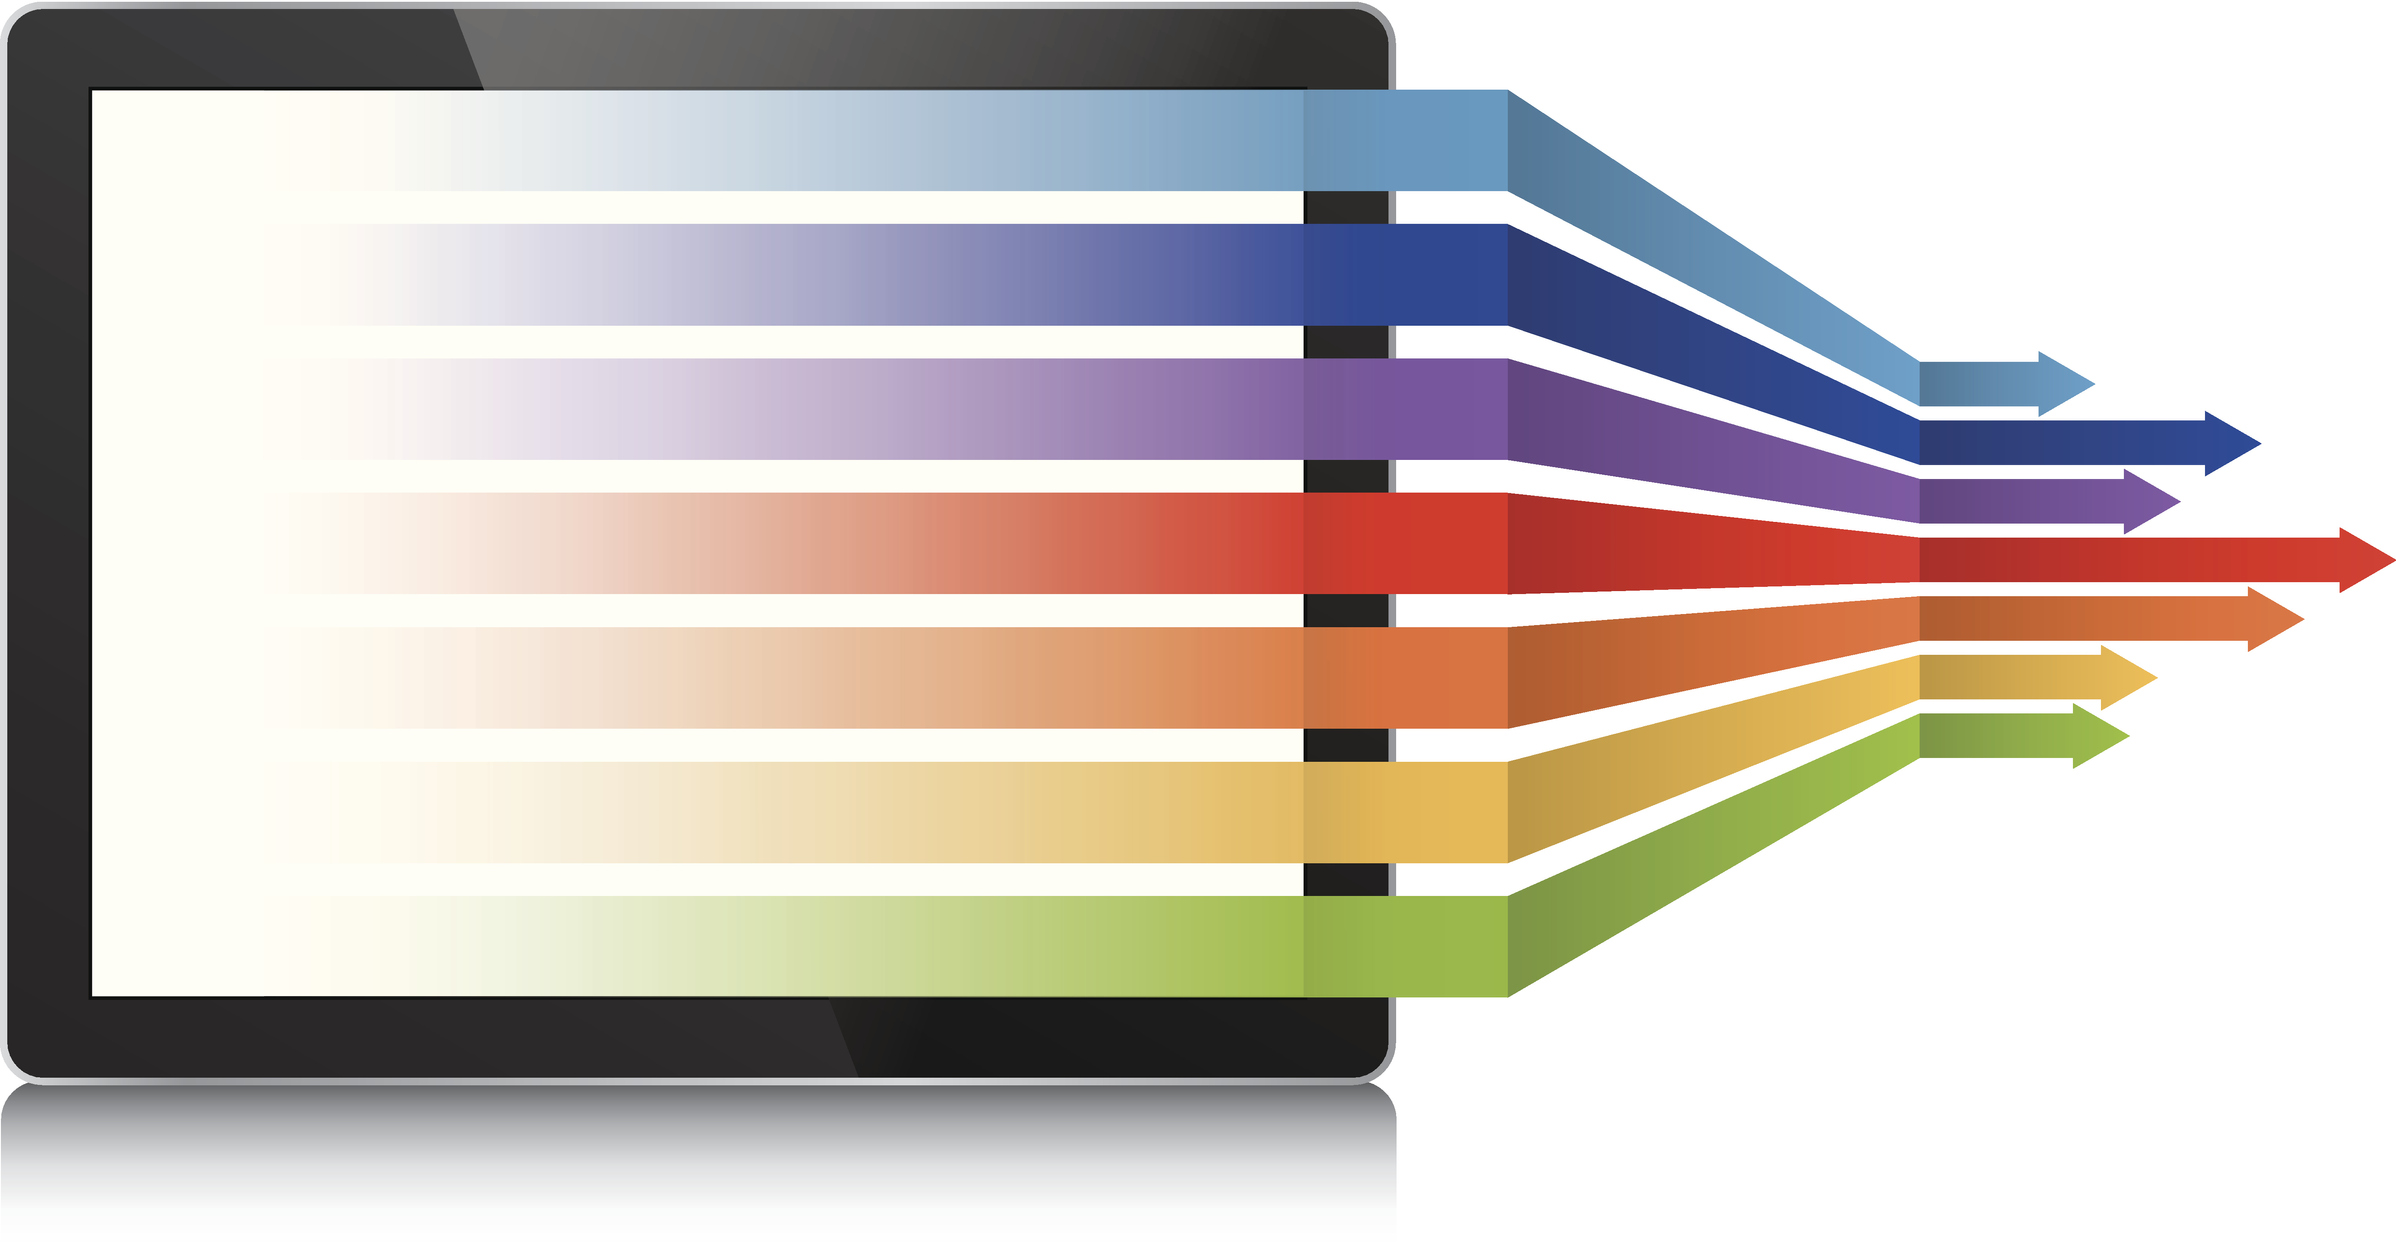 Illustration of rainbow of arrows flowing from digital notebook